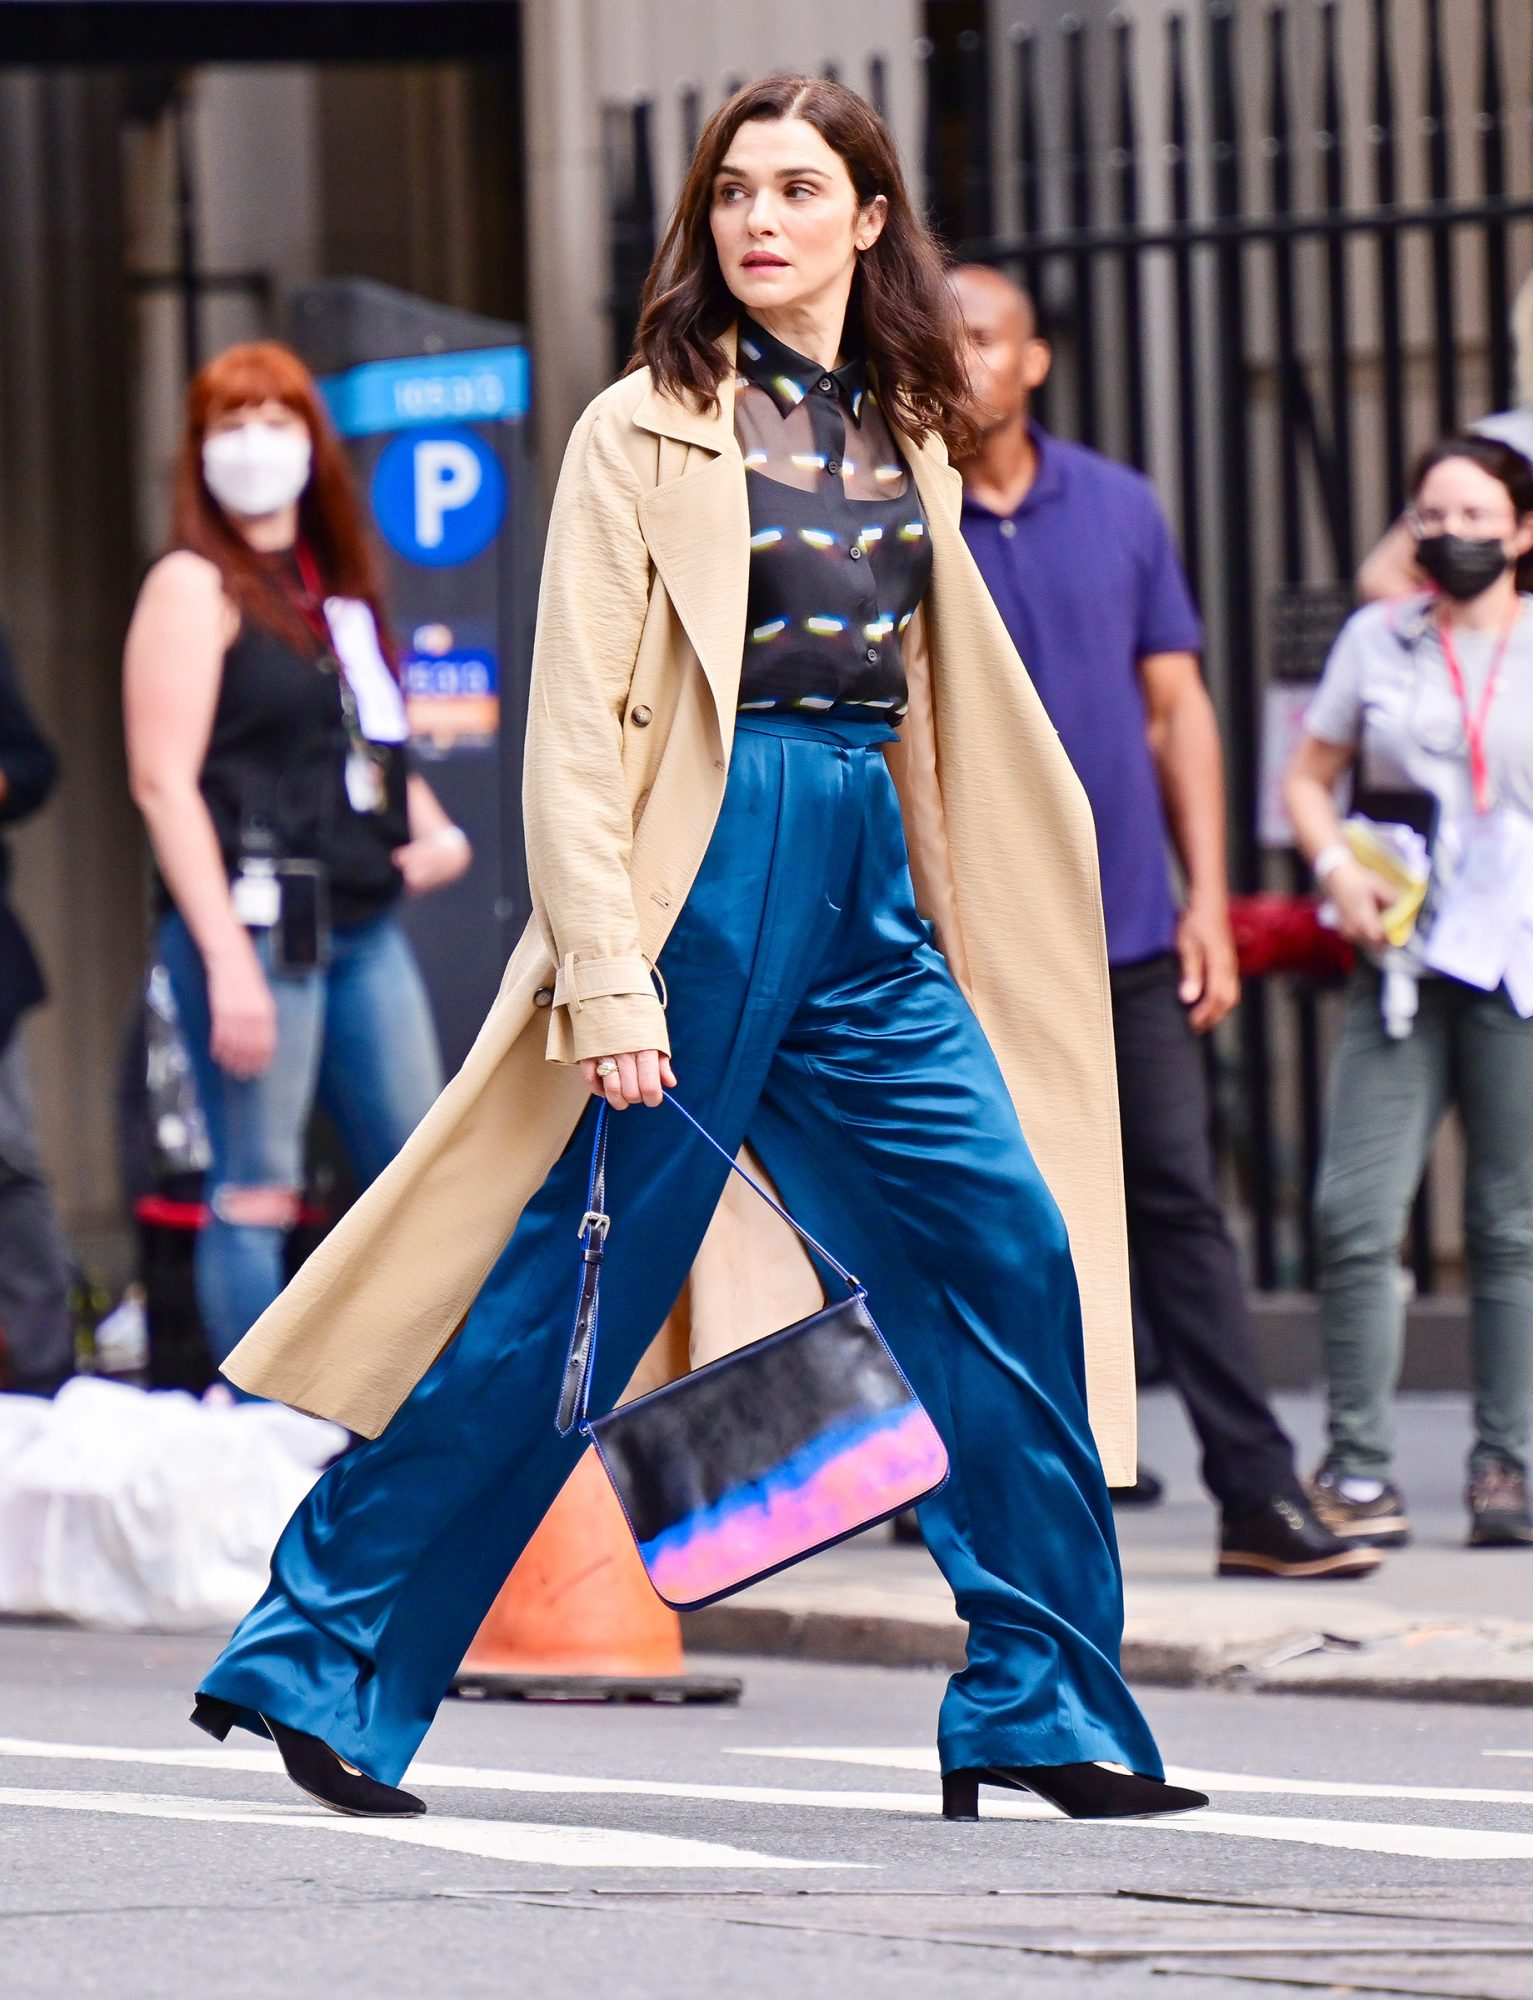 """Rachel Weisz seen on the set of """"Dead Ringers"""" on the streets of Manhattan on August 02, 2021 in New York City"""